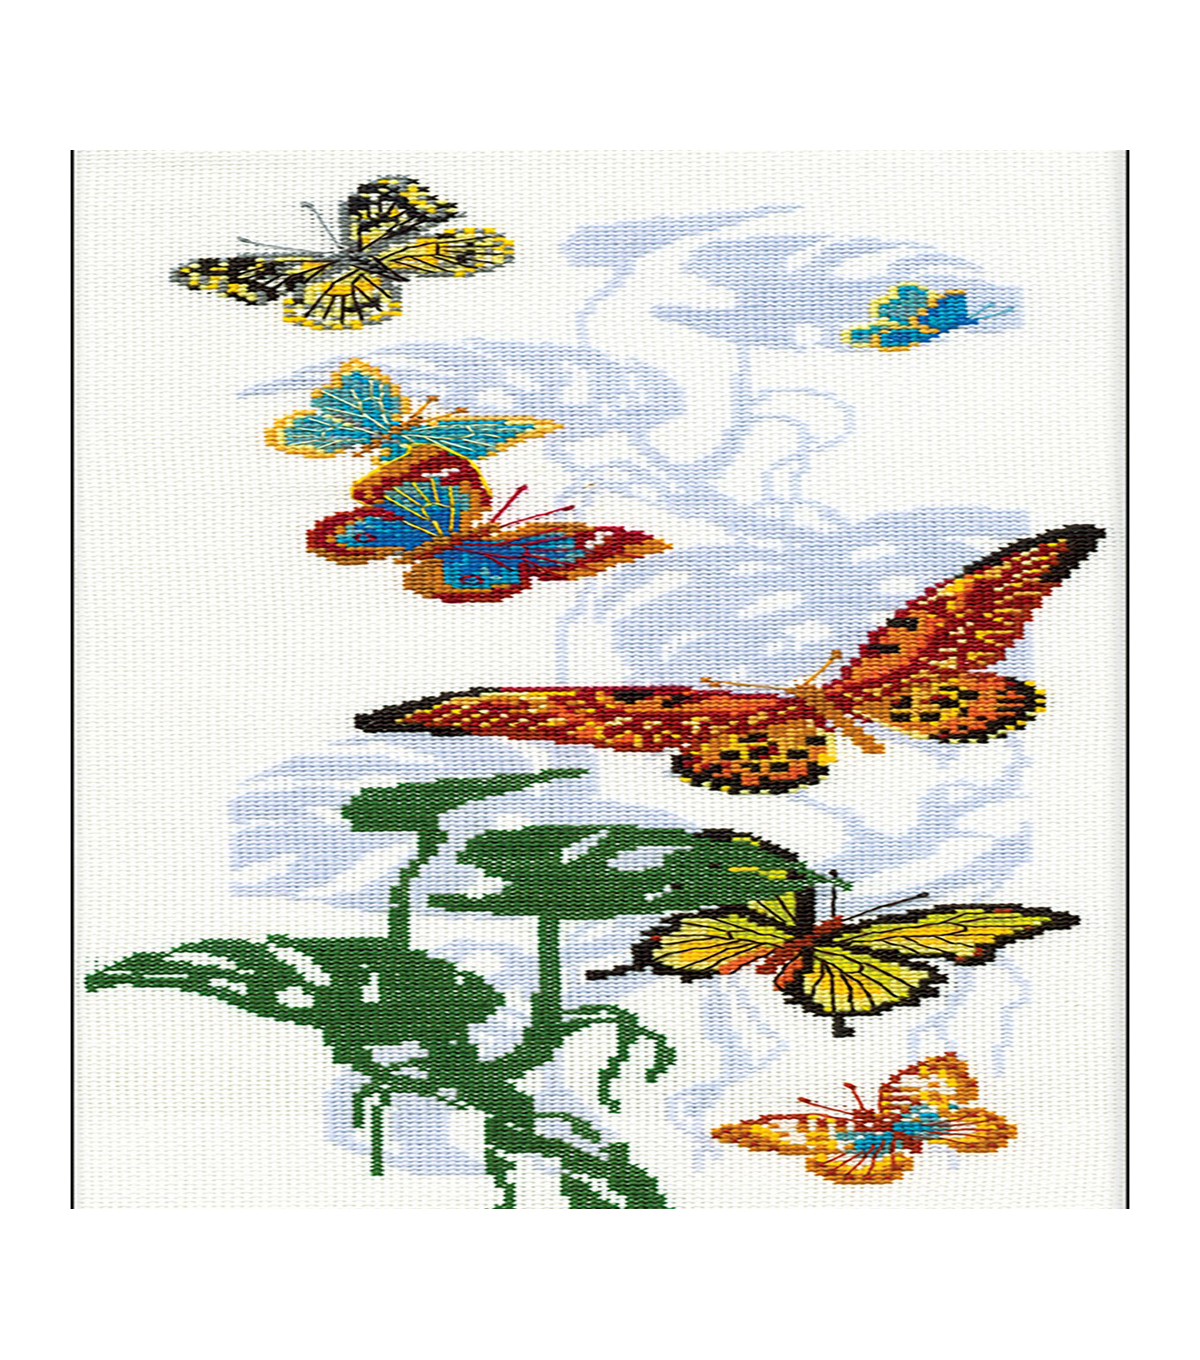 RIOLIS 8.75\u0027\u0027x19.75\u0027\u0027 Counted Cross Stitch Kit-Exotic Butterflies